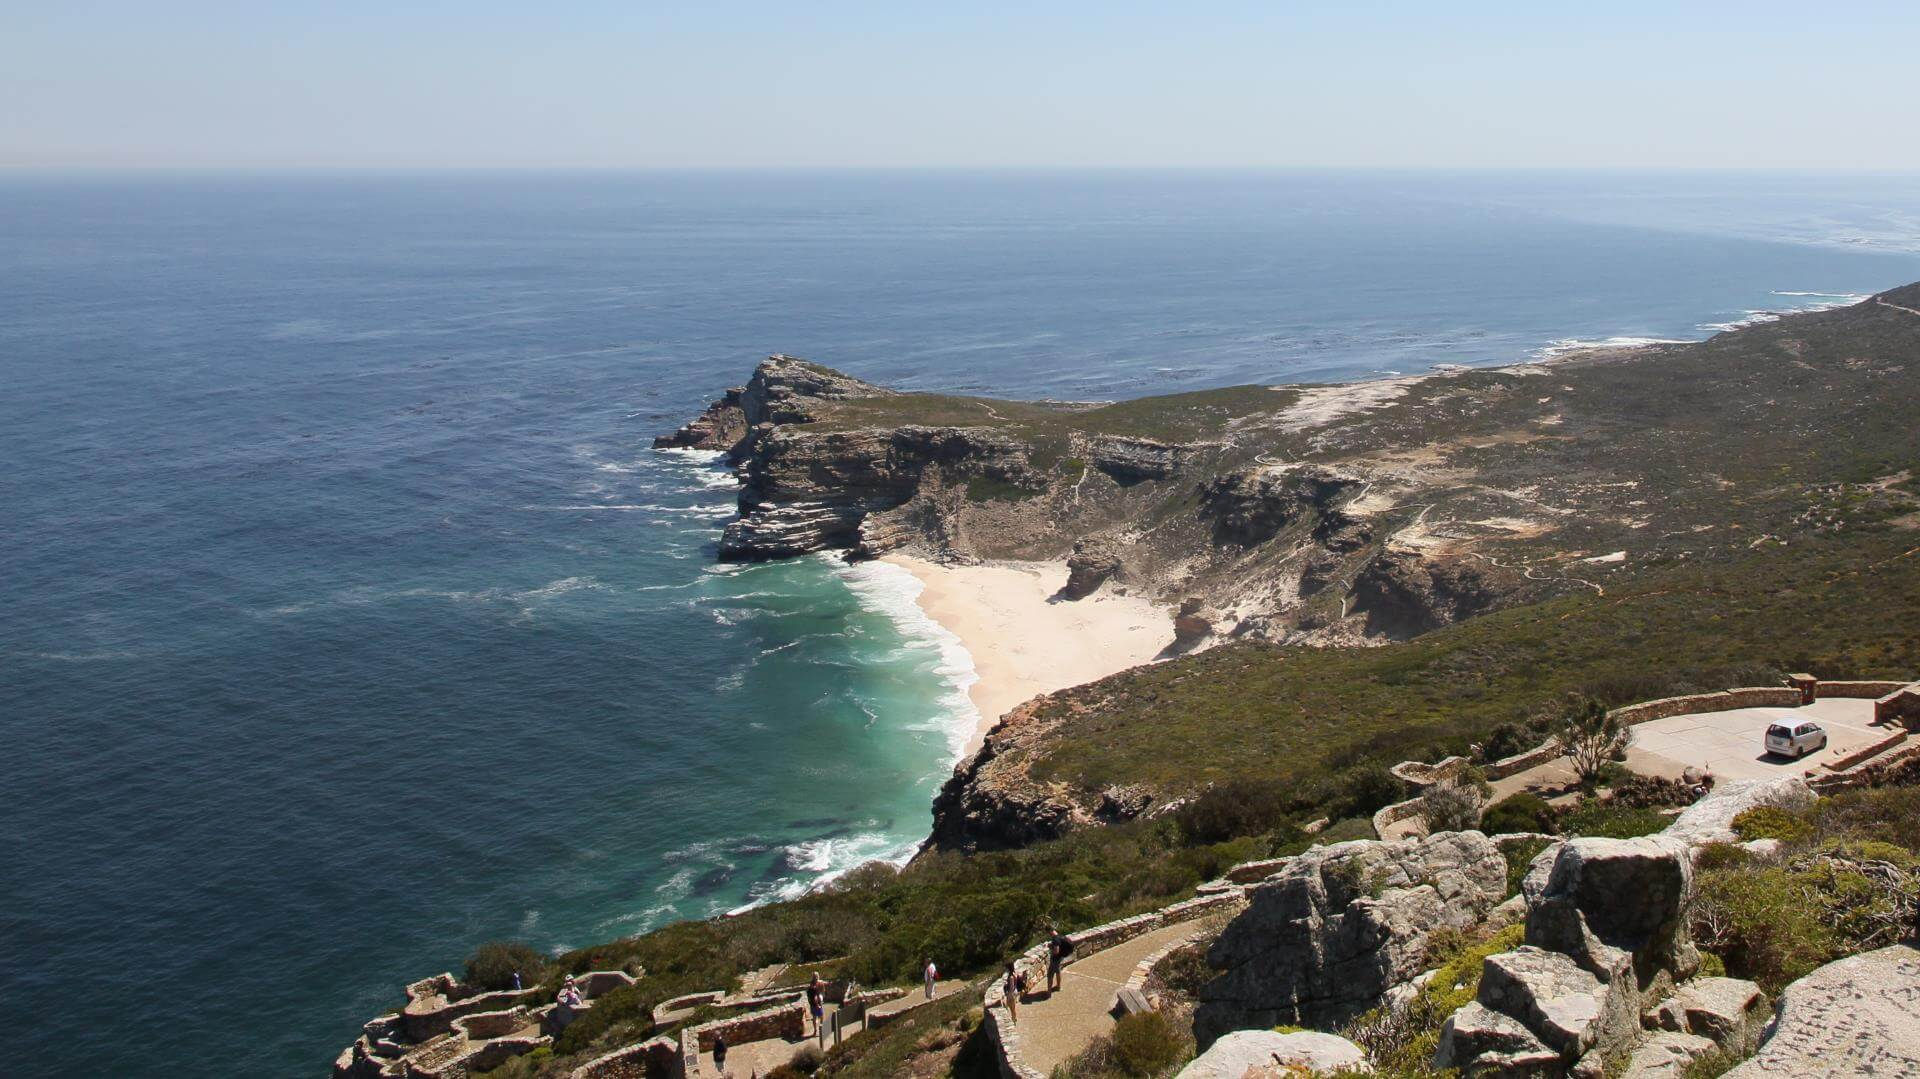 Cape Of Good Hopes during summer, South Africa